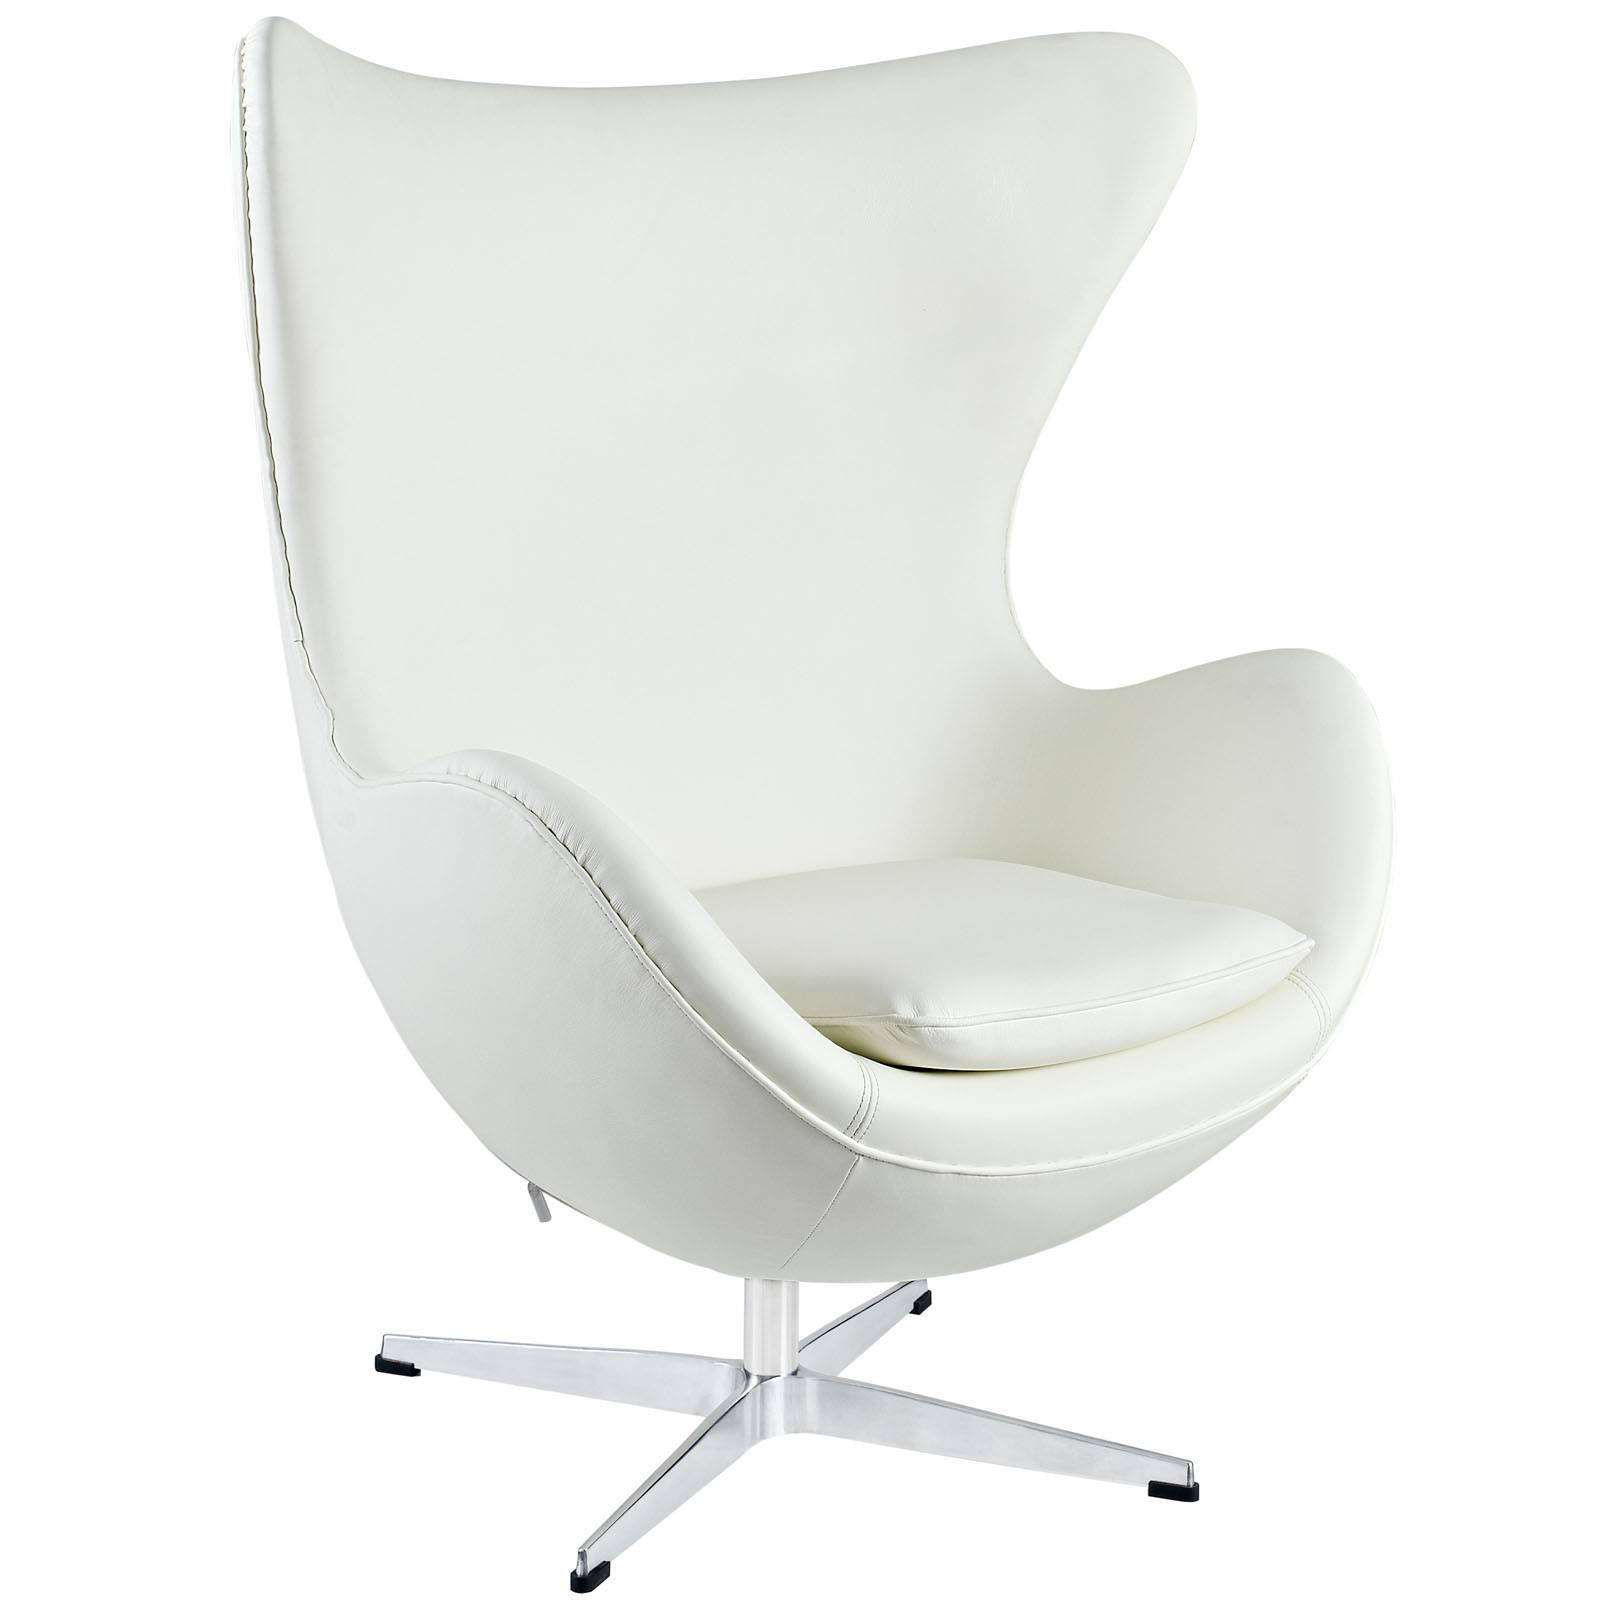 Arne Jacobson Style Egg Chair